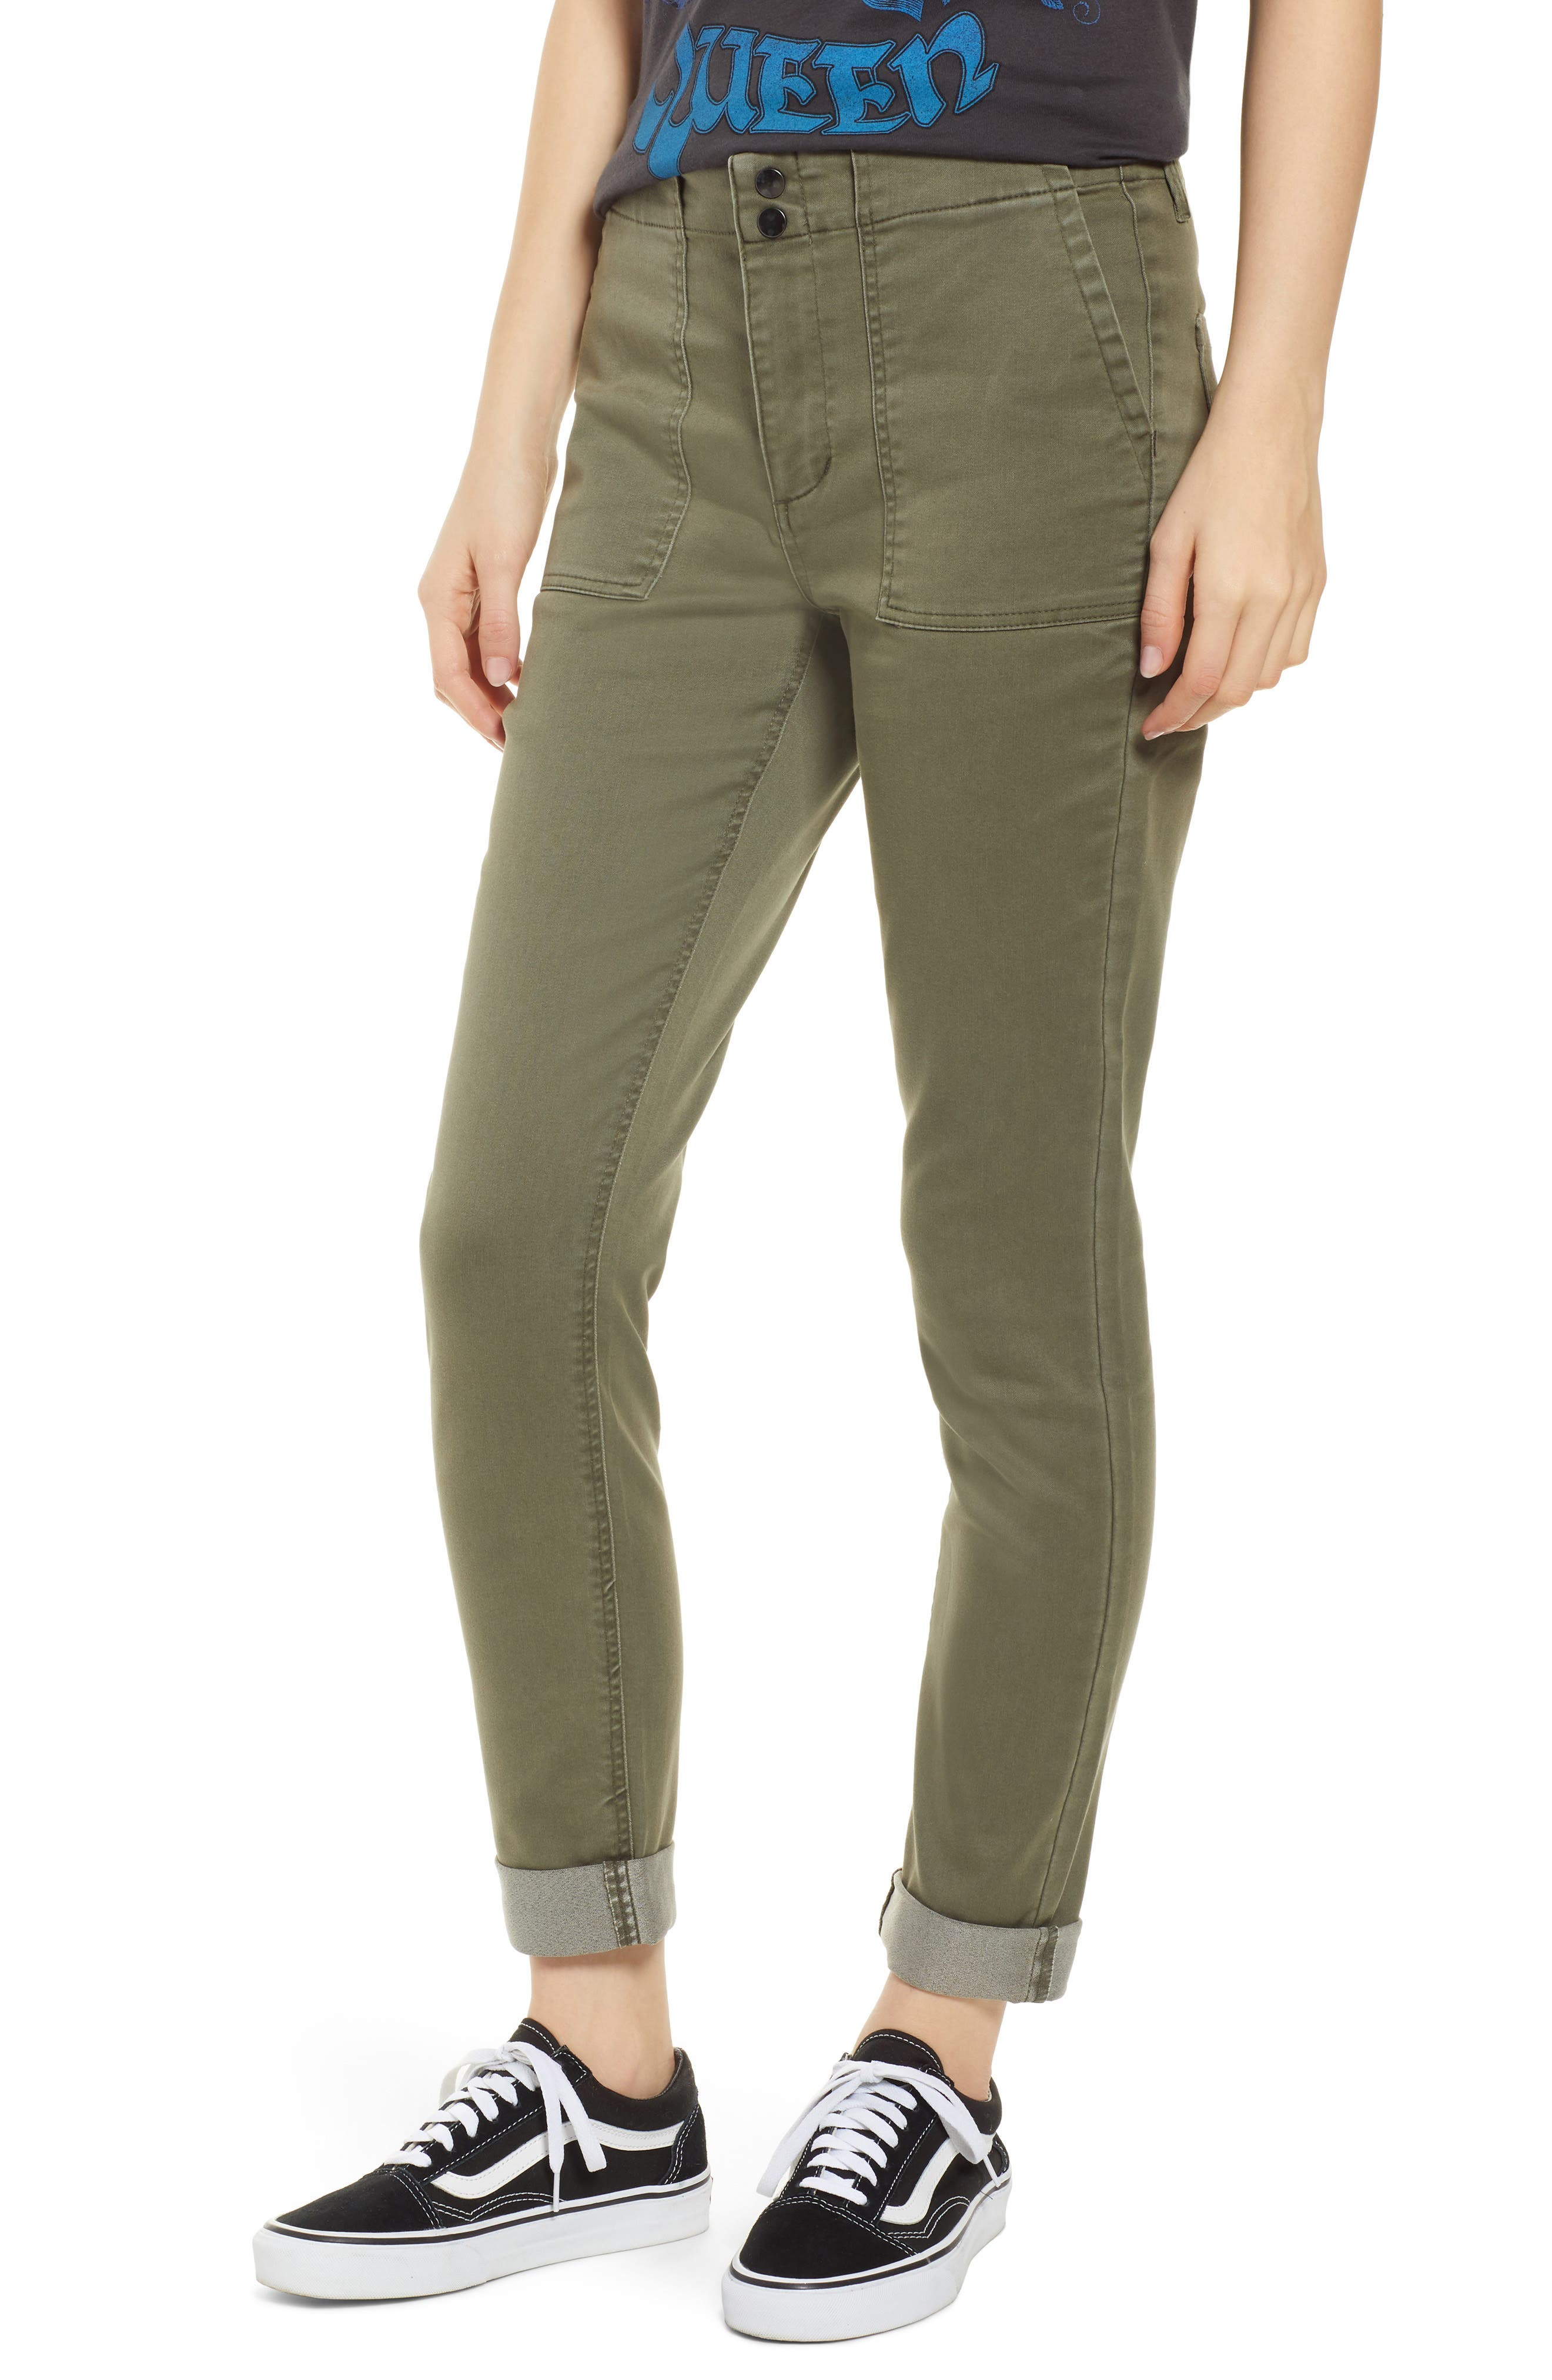 TINSEL Cuffed Sateen Skinny Pants, Main, color, DUSTY OLIVE